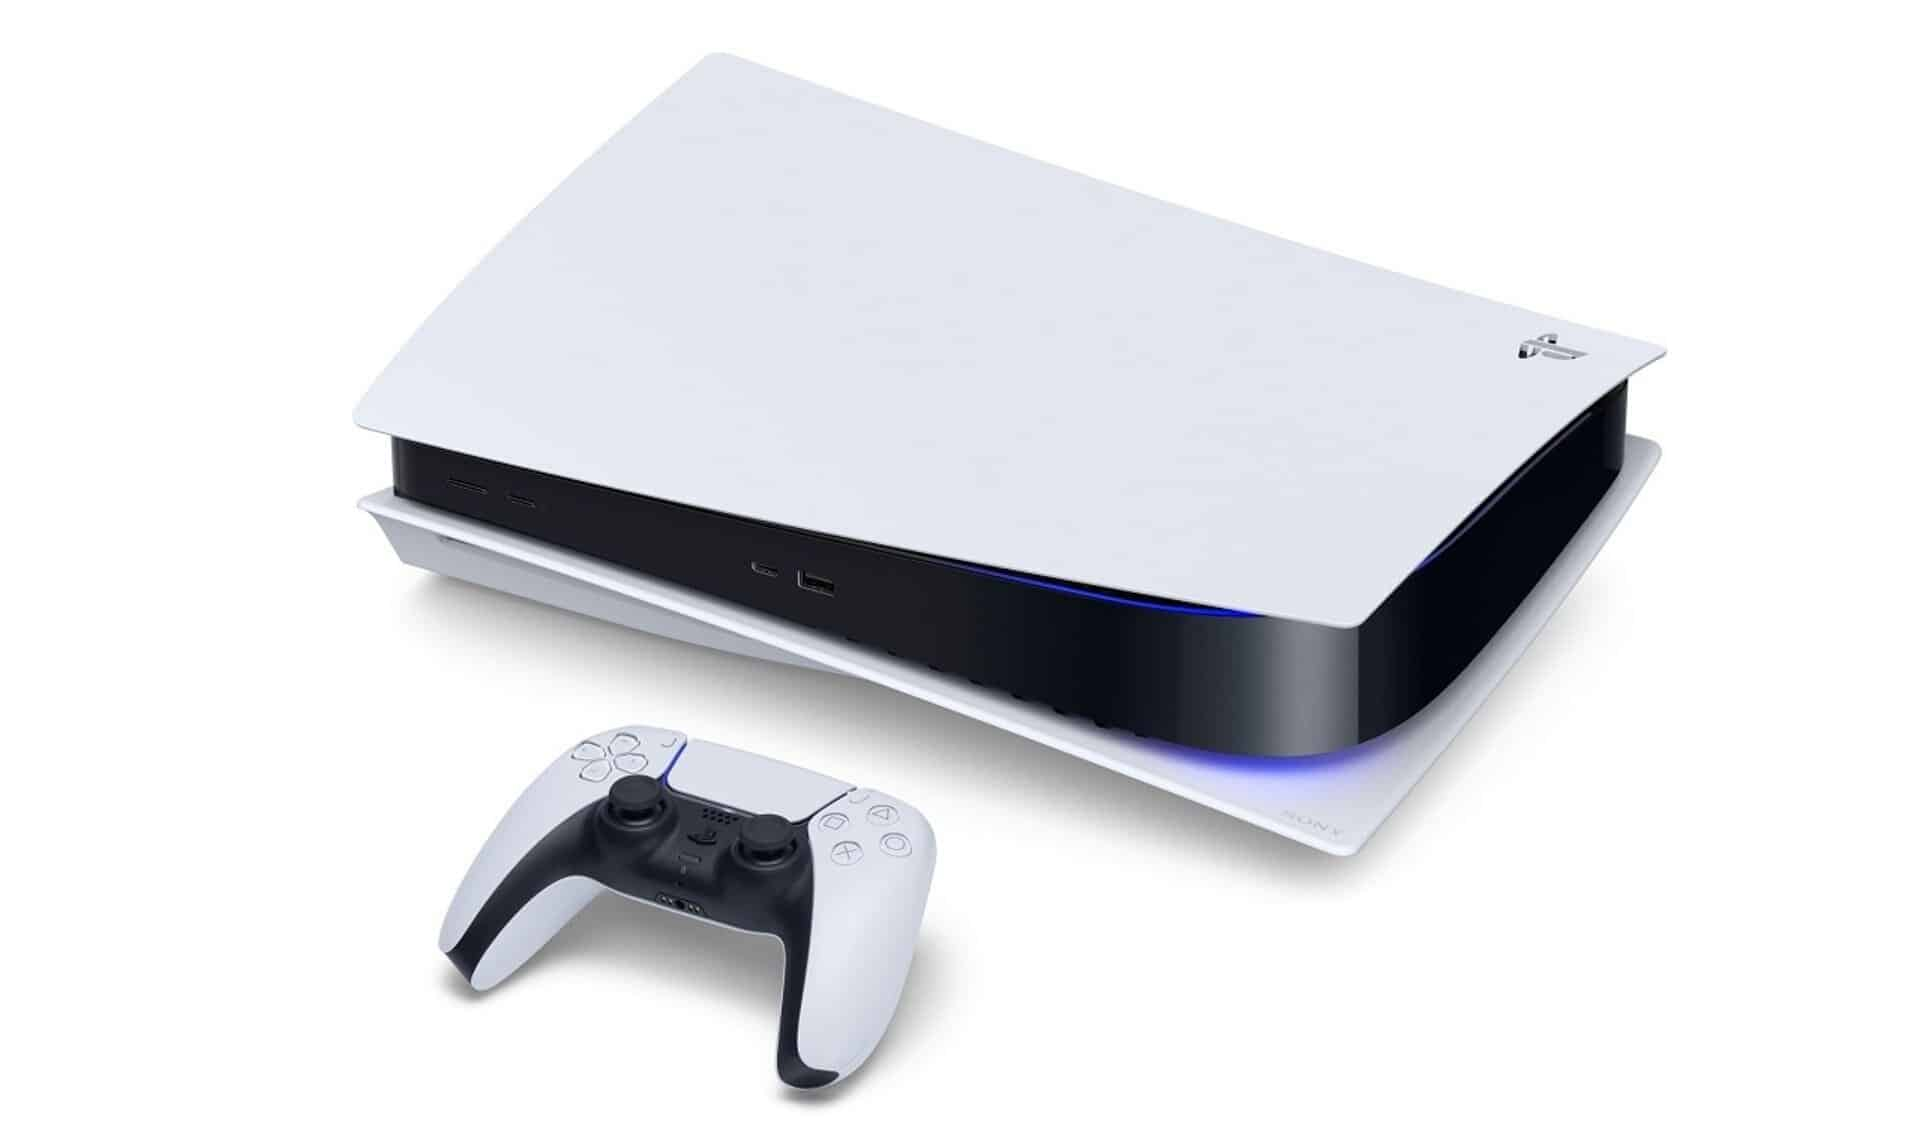 playstation 5 scalper bots law legality sue the ps5 scalpers Escape from the Law